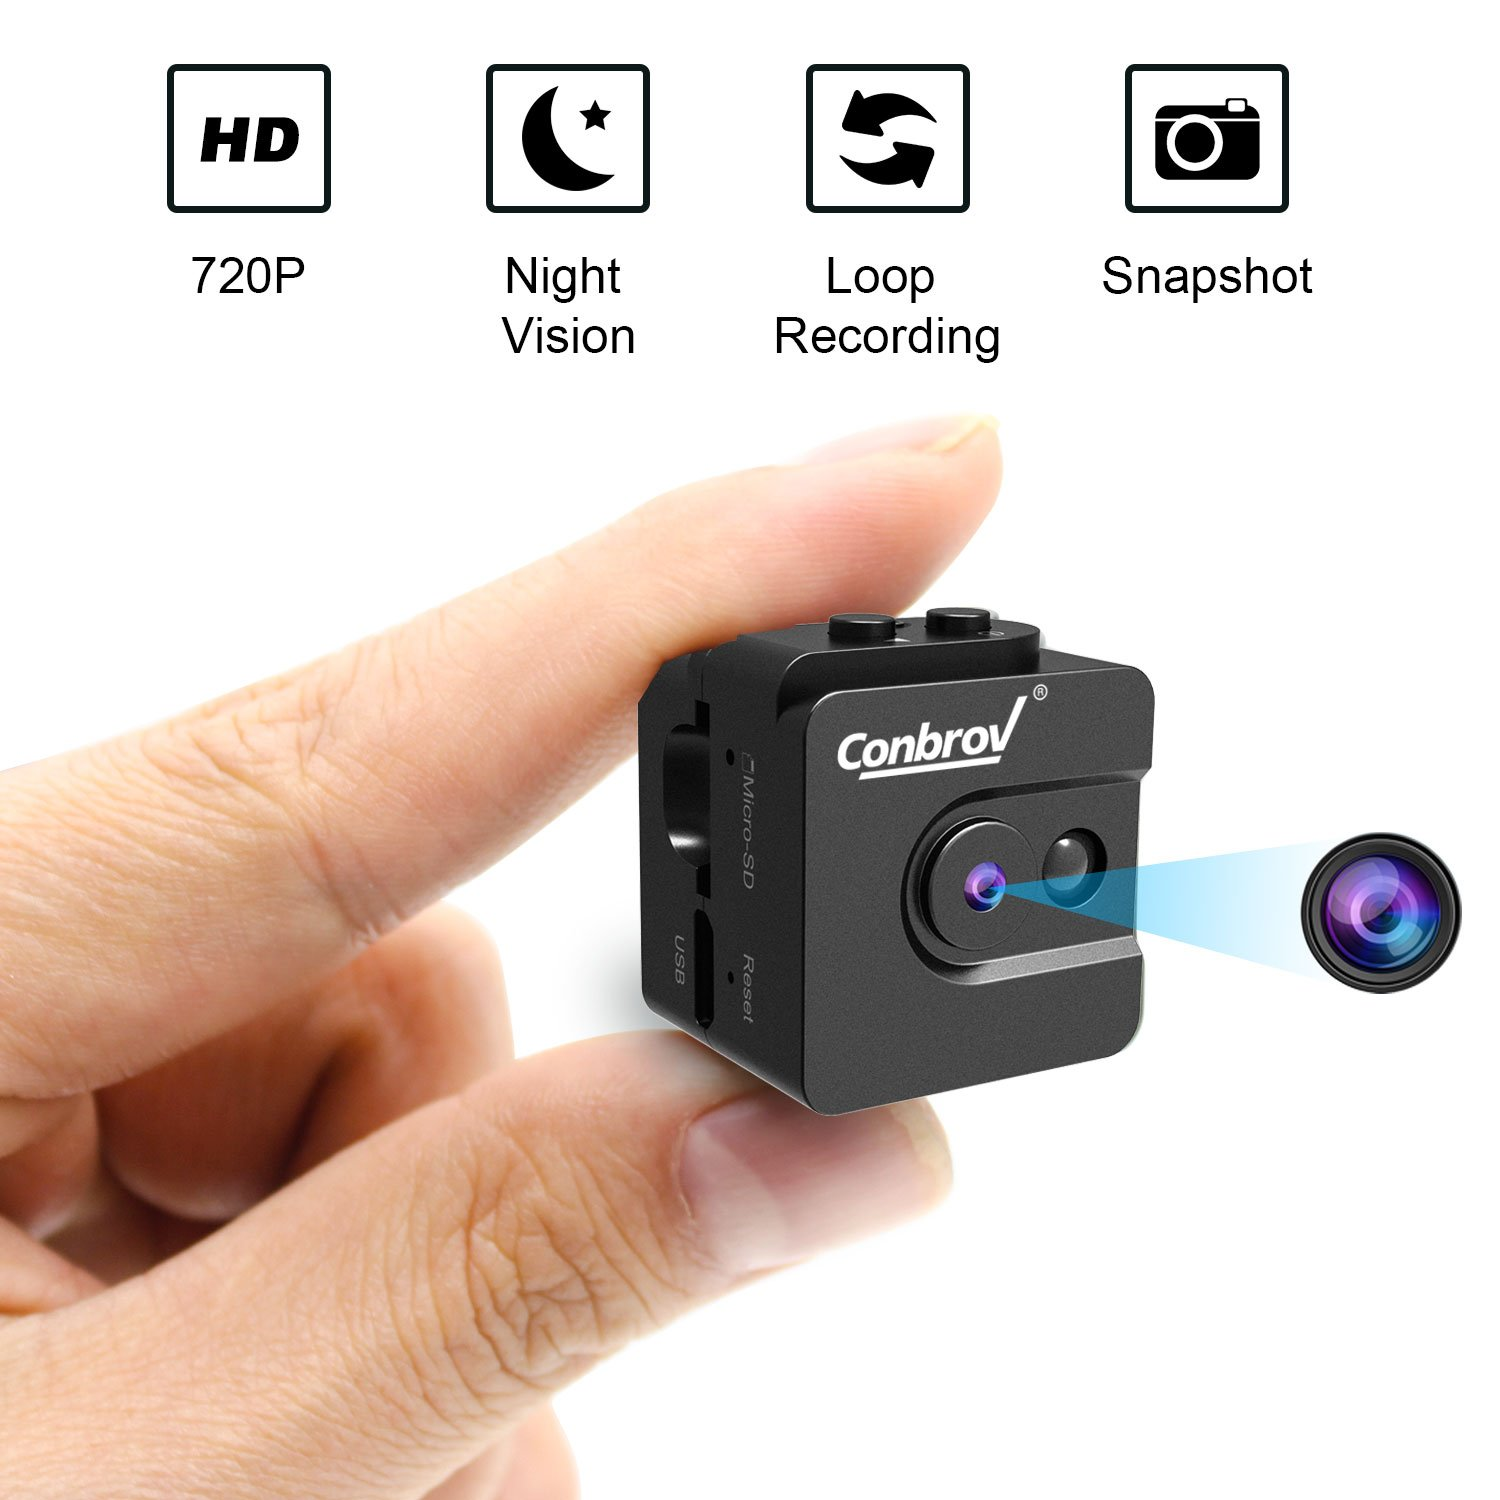 Mini Camera, Conbrov 720P Night Vision Spy Camcorder Loop Recording Portable Nanny Cam for Home and Office Indoor/Outdoor Use